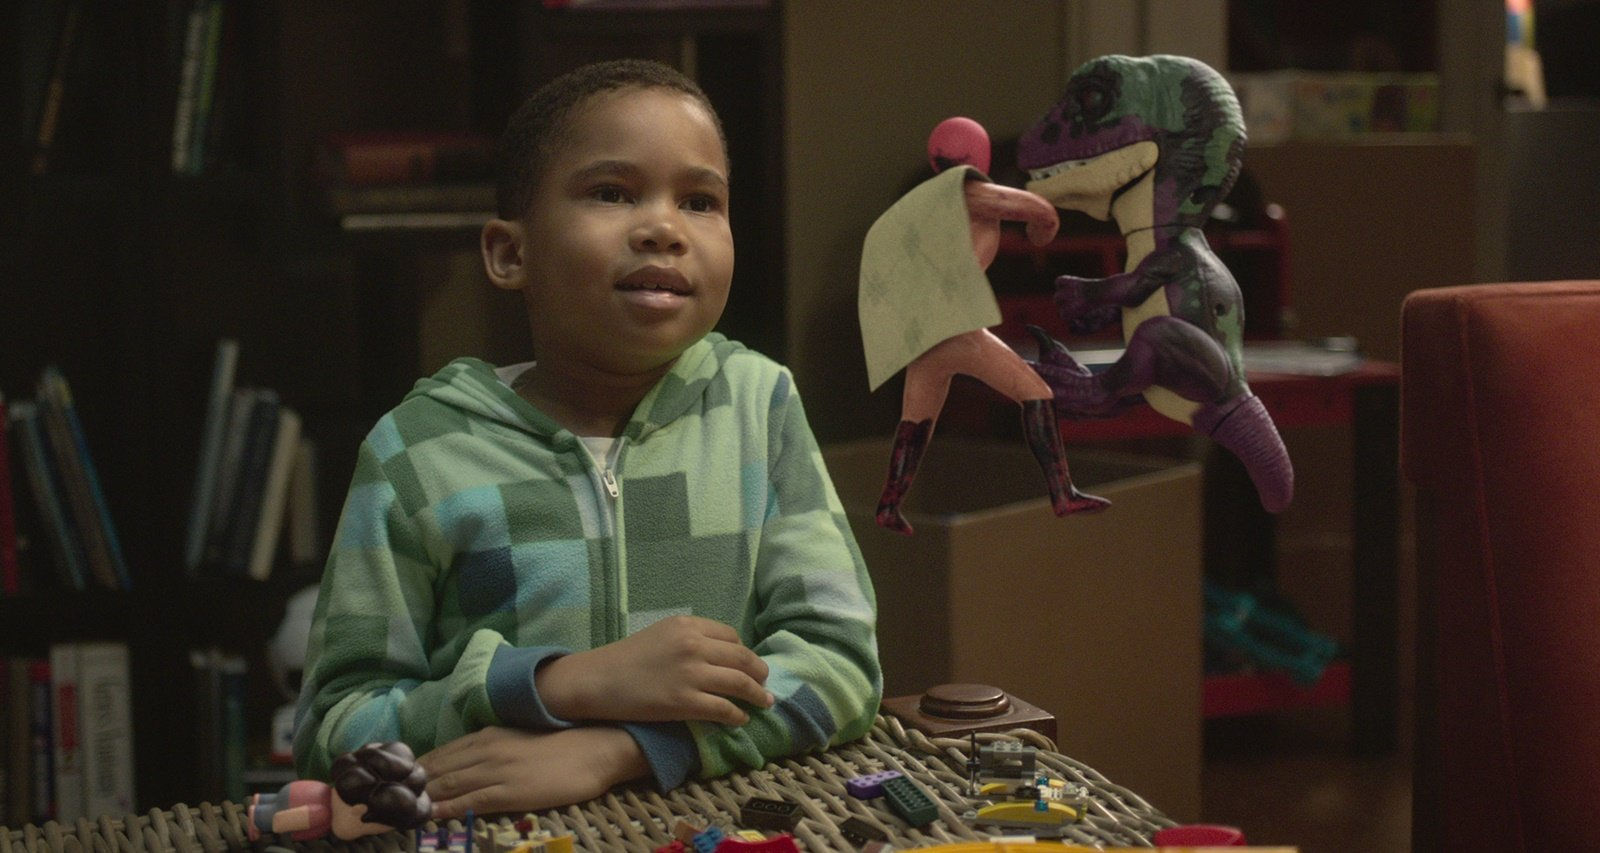 """Ja'Siah Young Wiki, Age, Family & Facts About the Child Artist from Netflix's """"Raising Dion"""""""